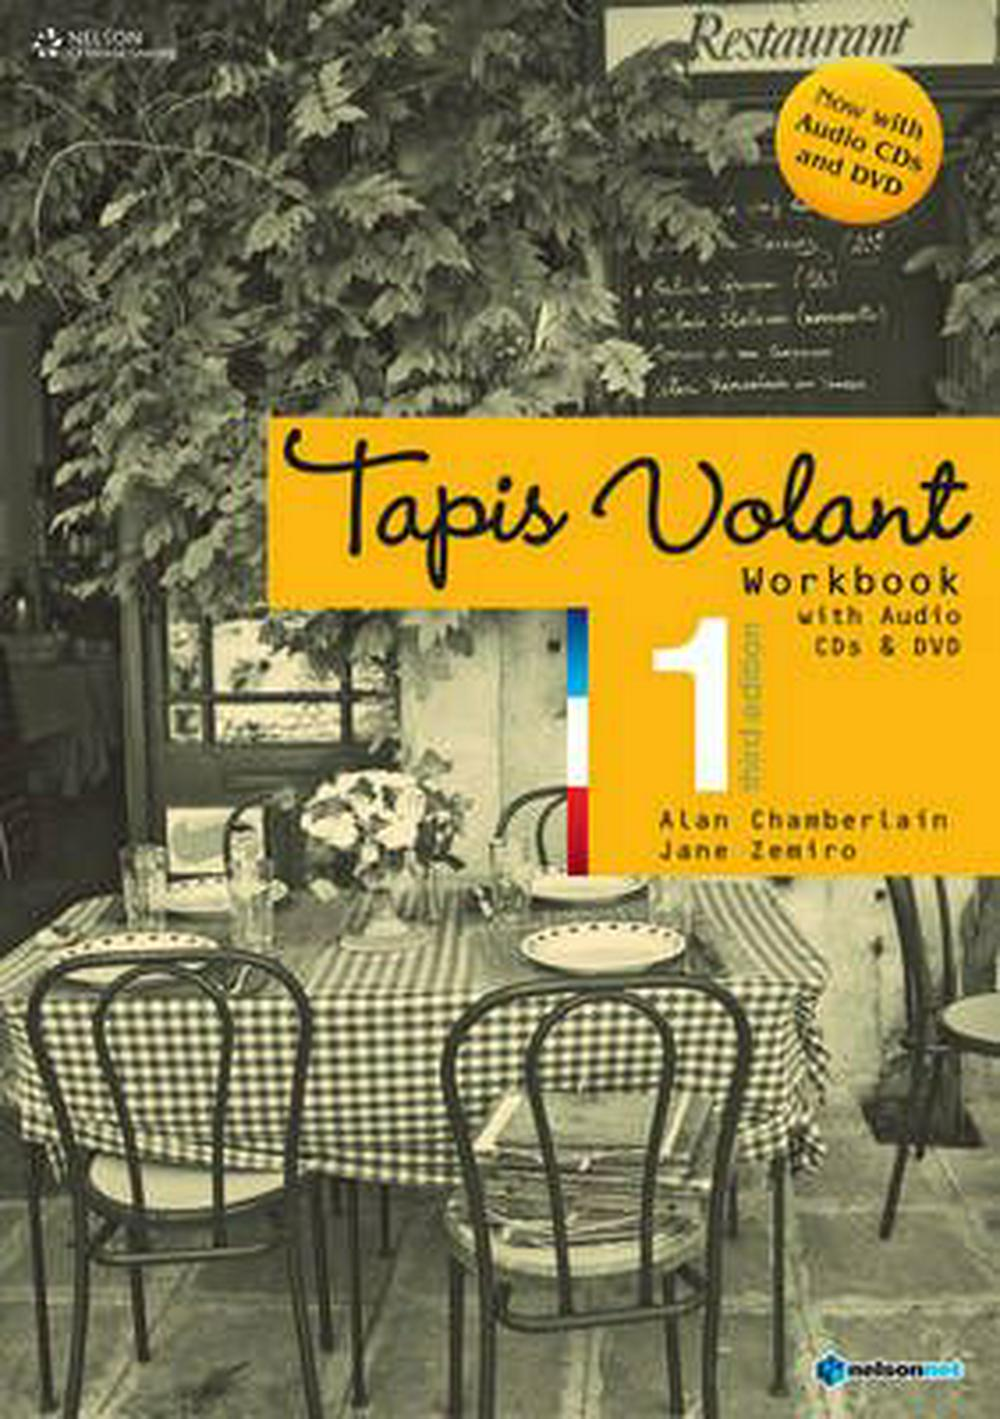 Tapis Volant 1 Workbook Revised